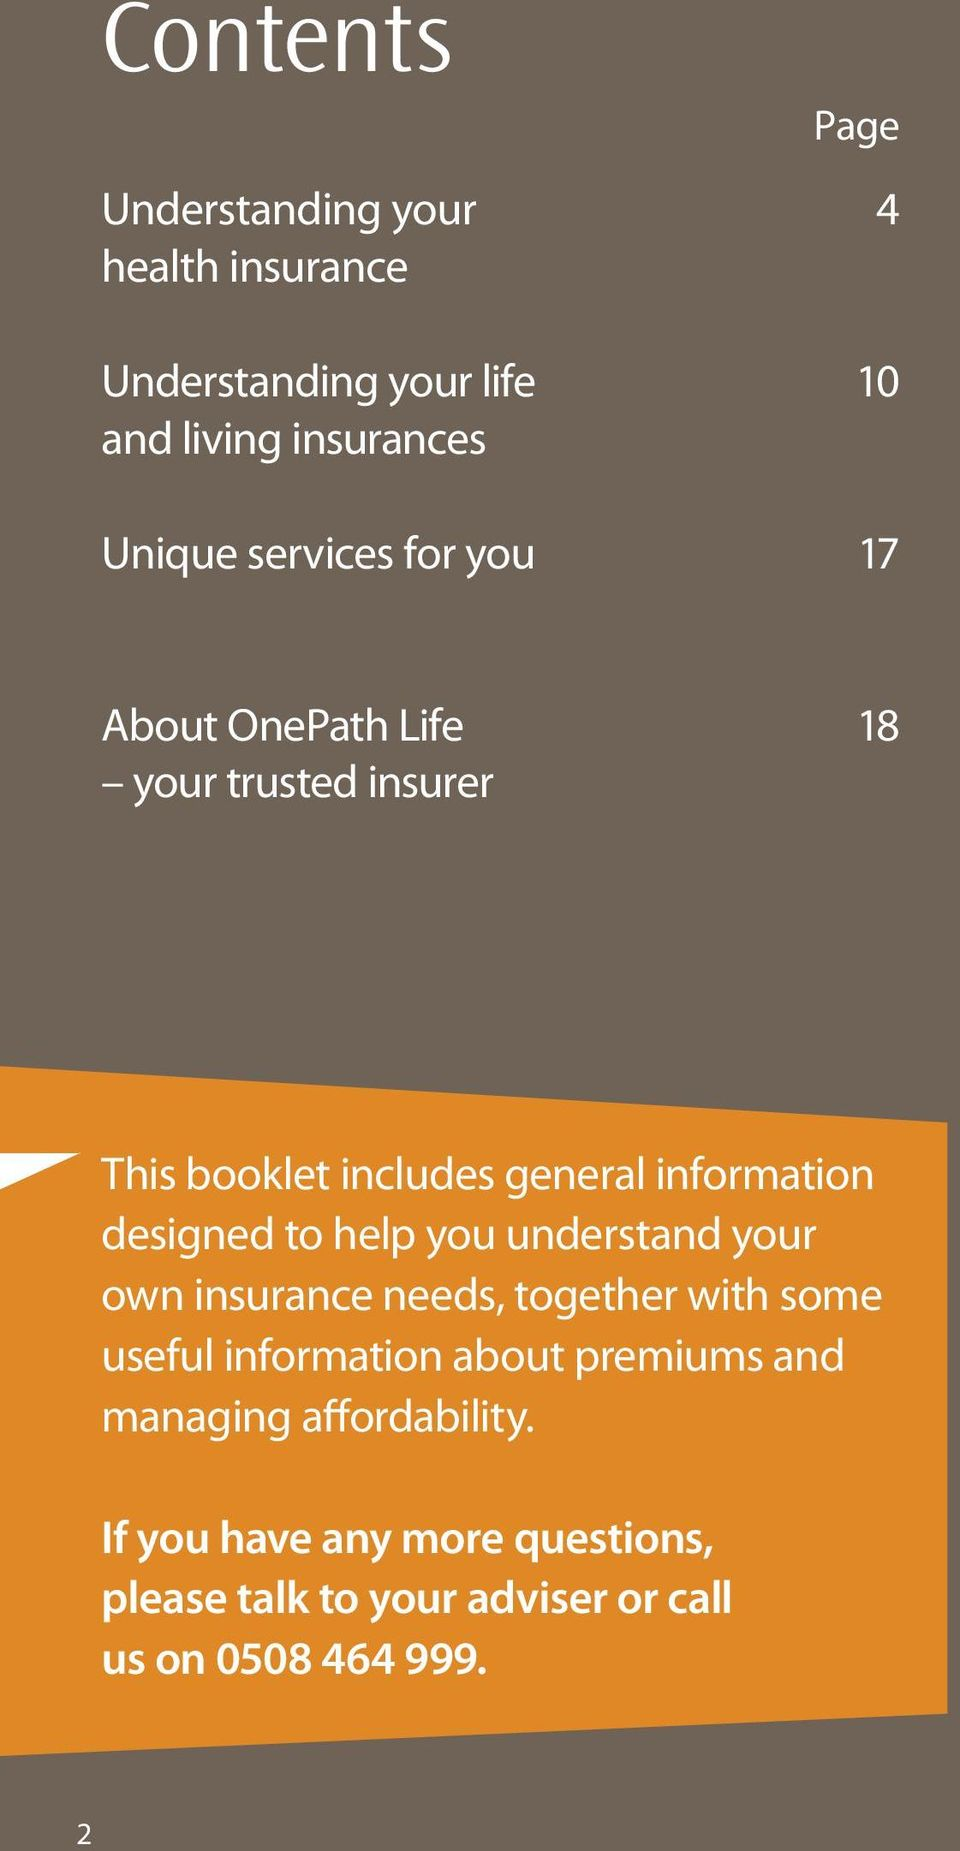 designed to help you understand your own insurance needs, together with some useful information about premiums